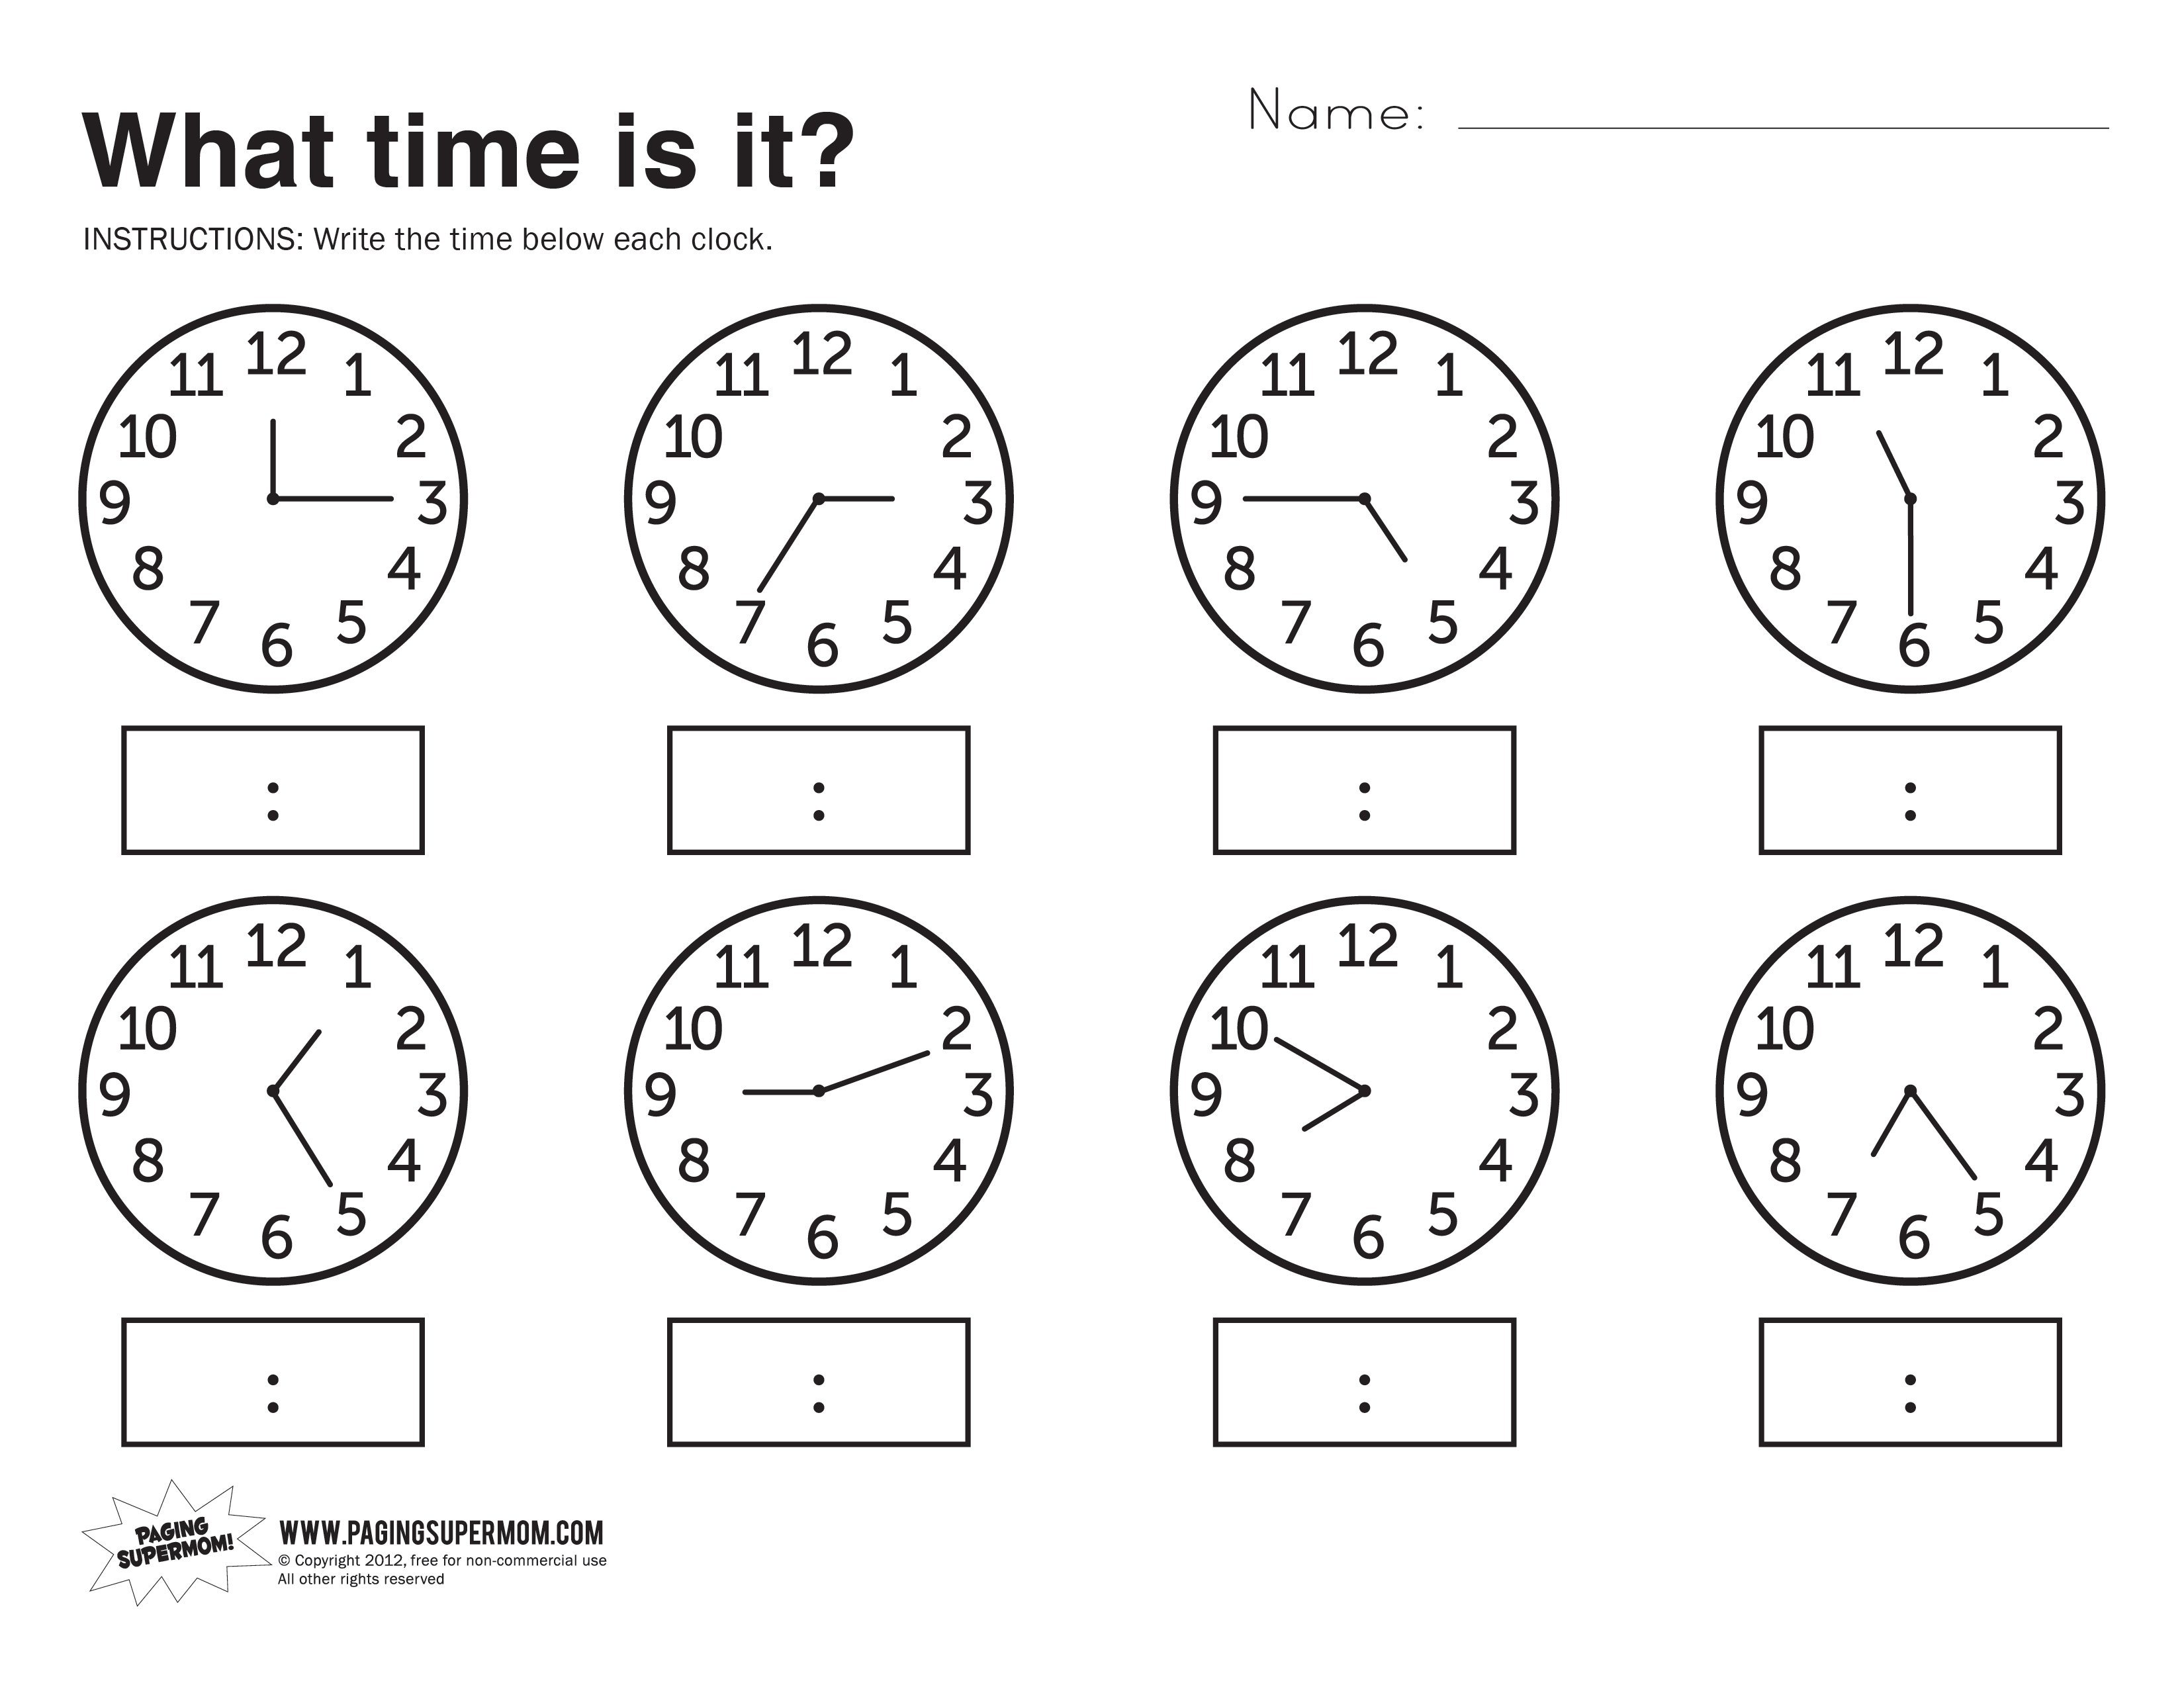 What Time Is It Printable Worksheet Paging Supermom – Workbook Vs Worksheet